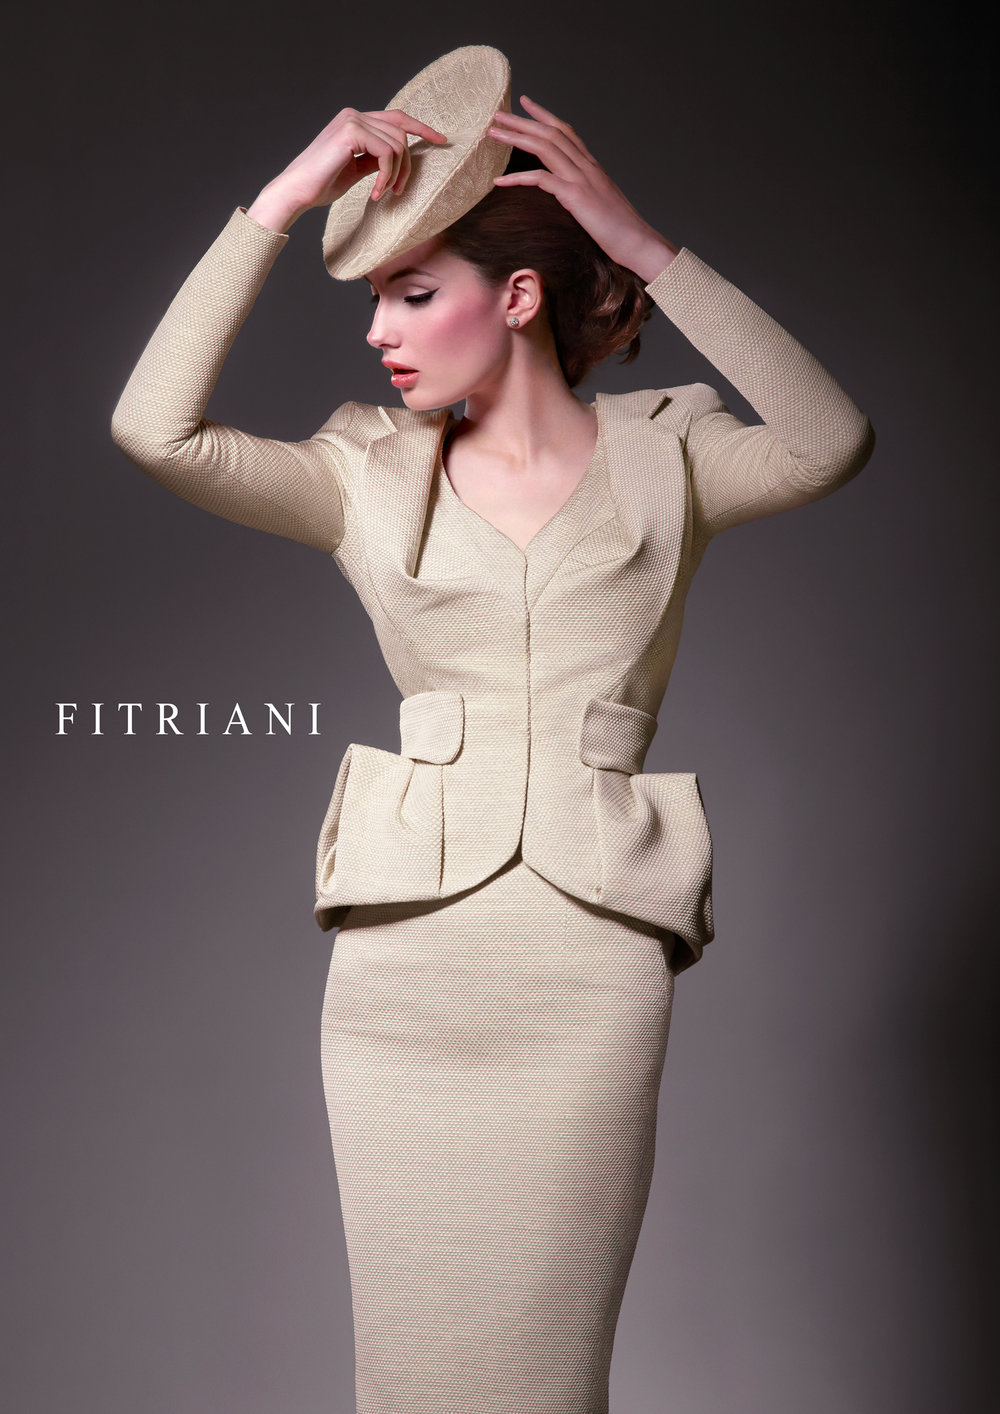 duncan telford, mootich, fitriani, fashion photography, portrait photography